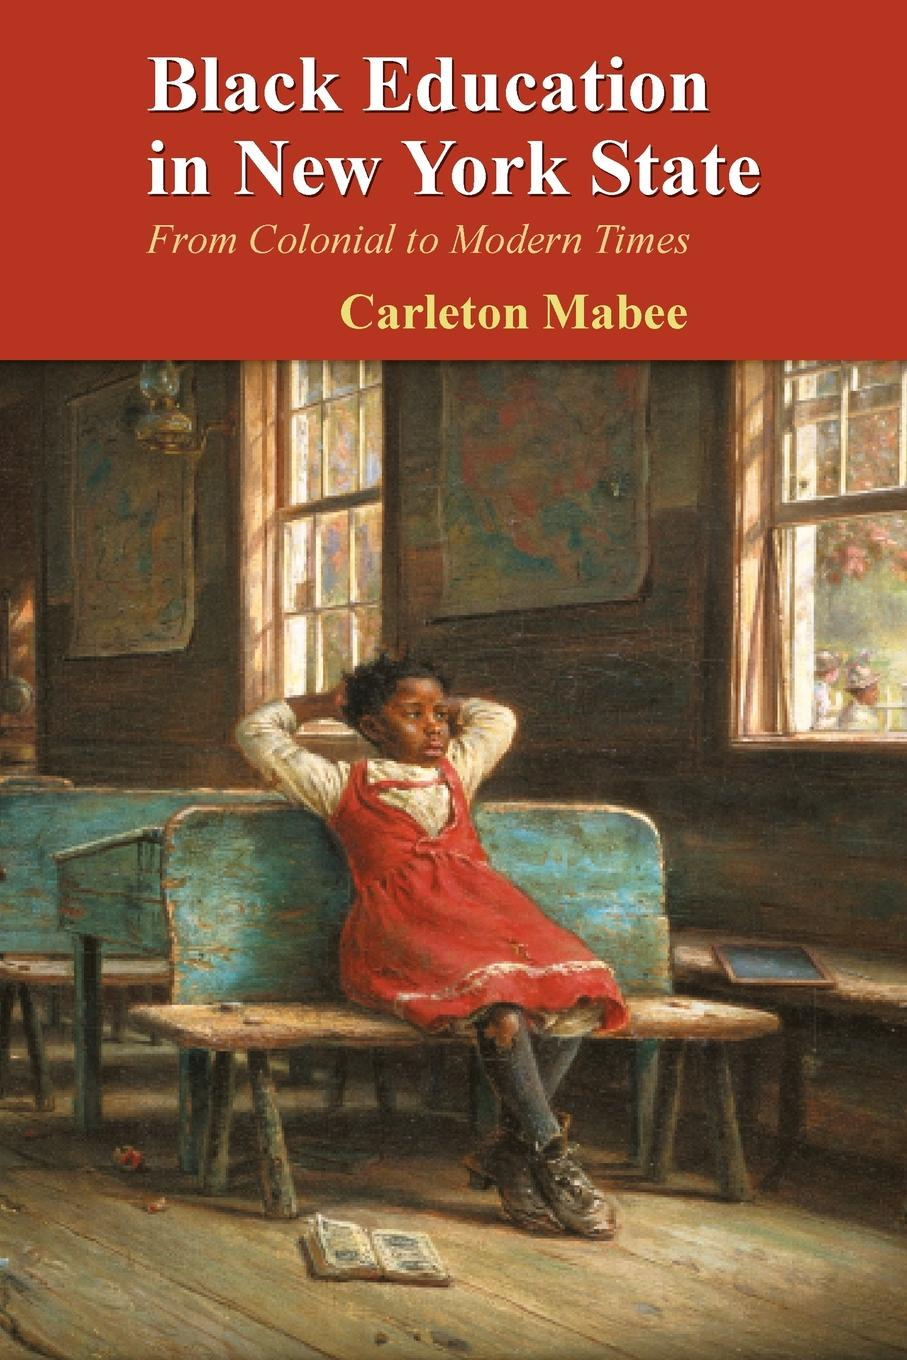 Carleton Mabee Black Education in New York State. From Colonial to Modern Times